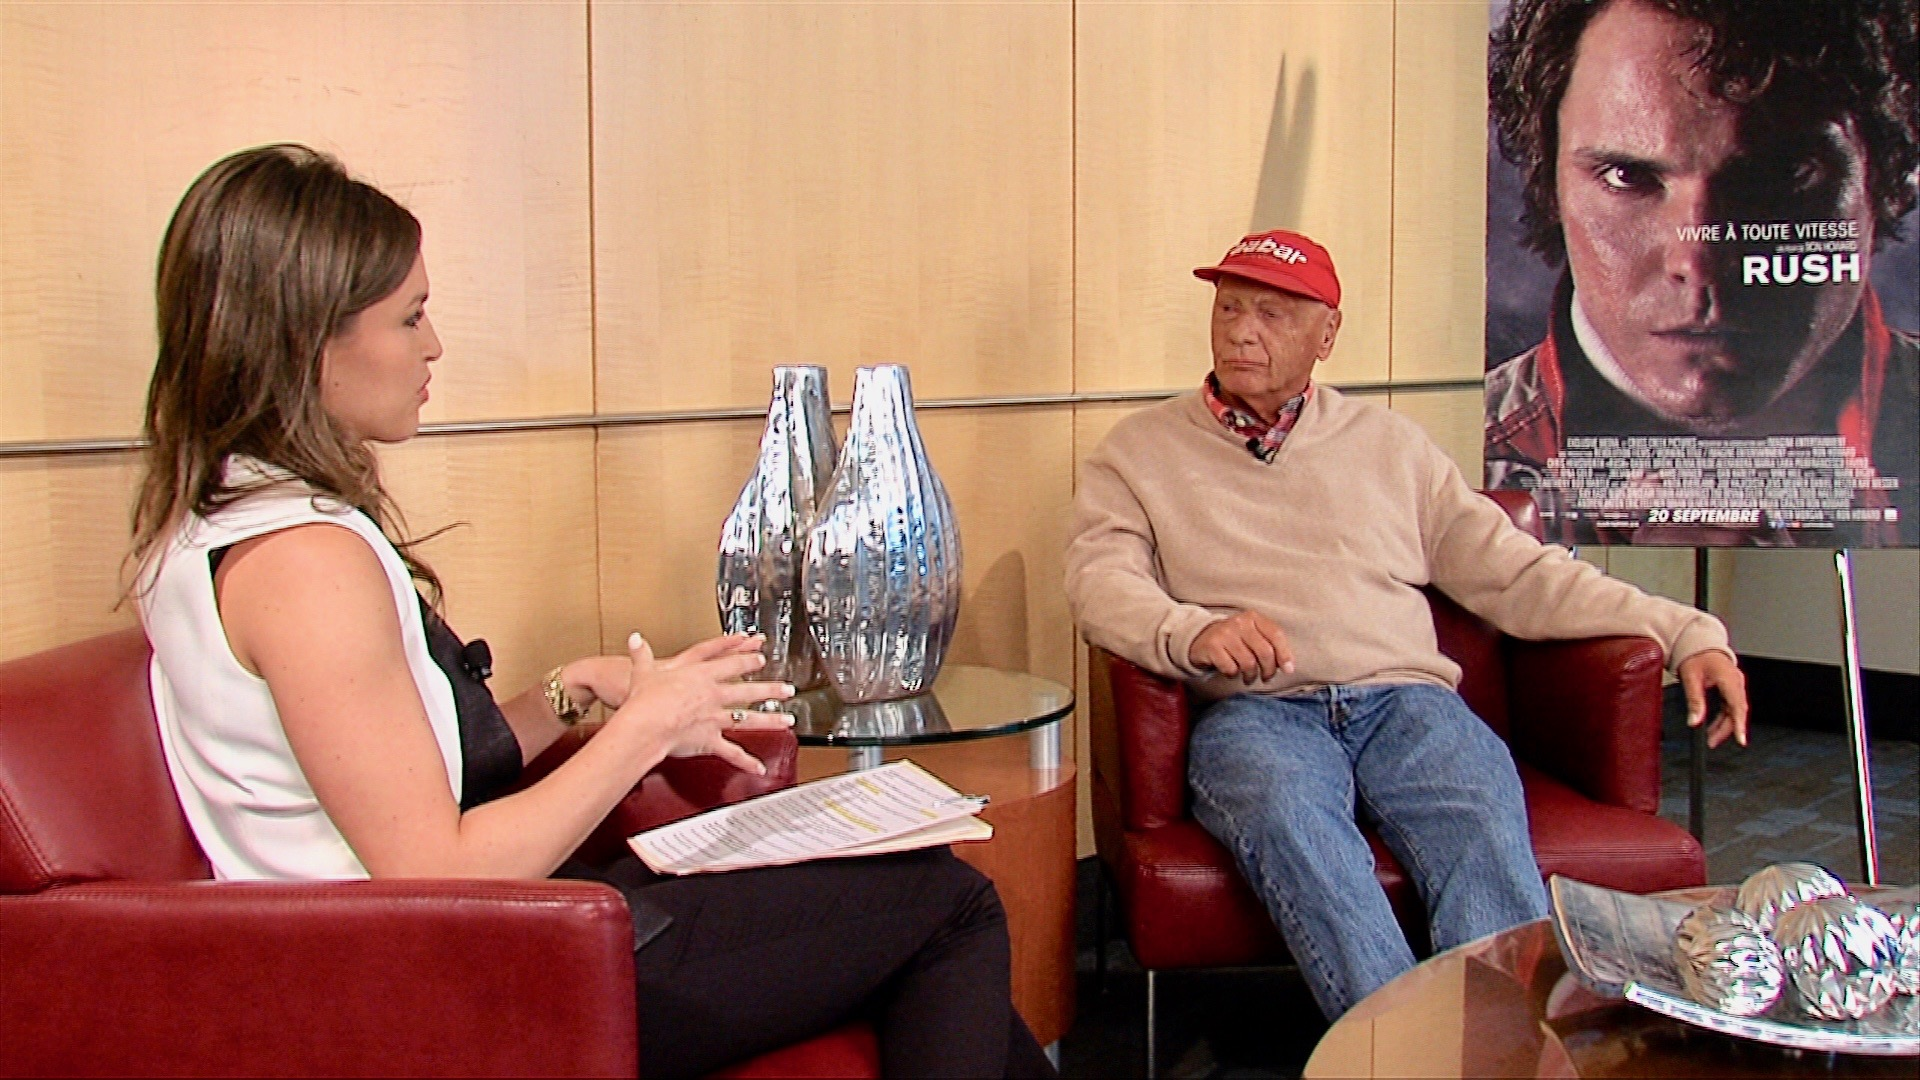 Sportsnet interview with Niki Lauda